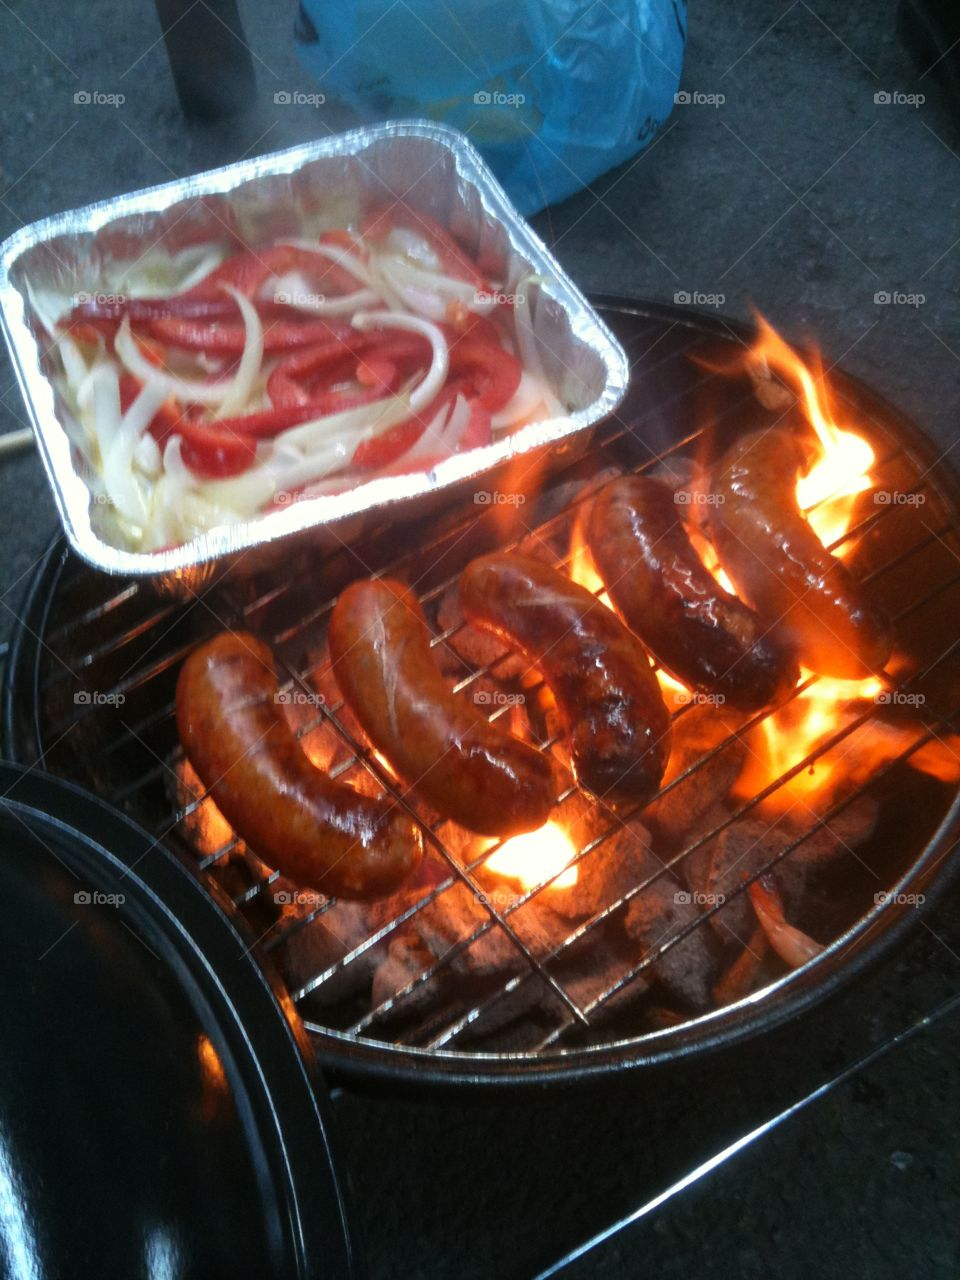 Tailgating at the Steelers game. Cooking Italian sausages, peppers and onions on the grill.